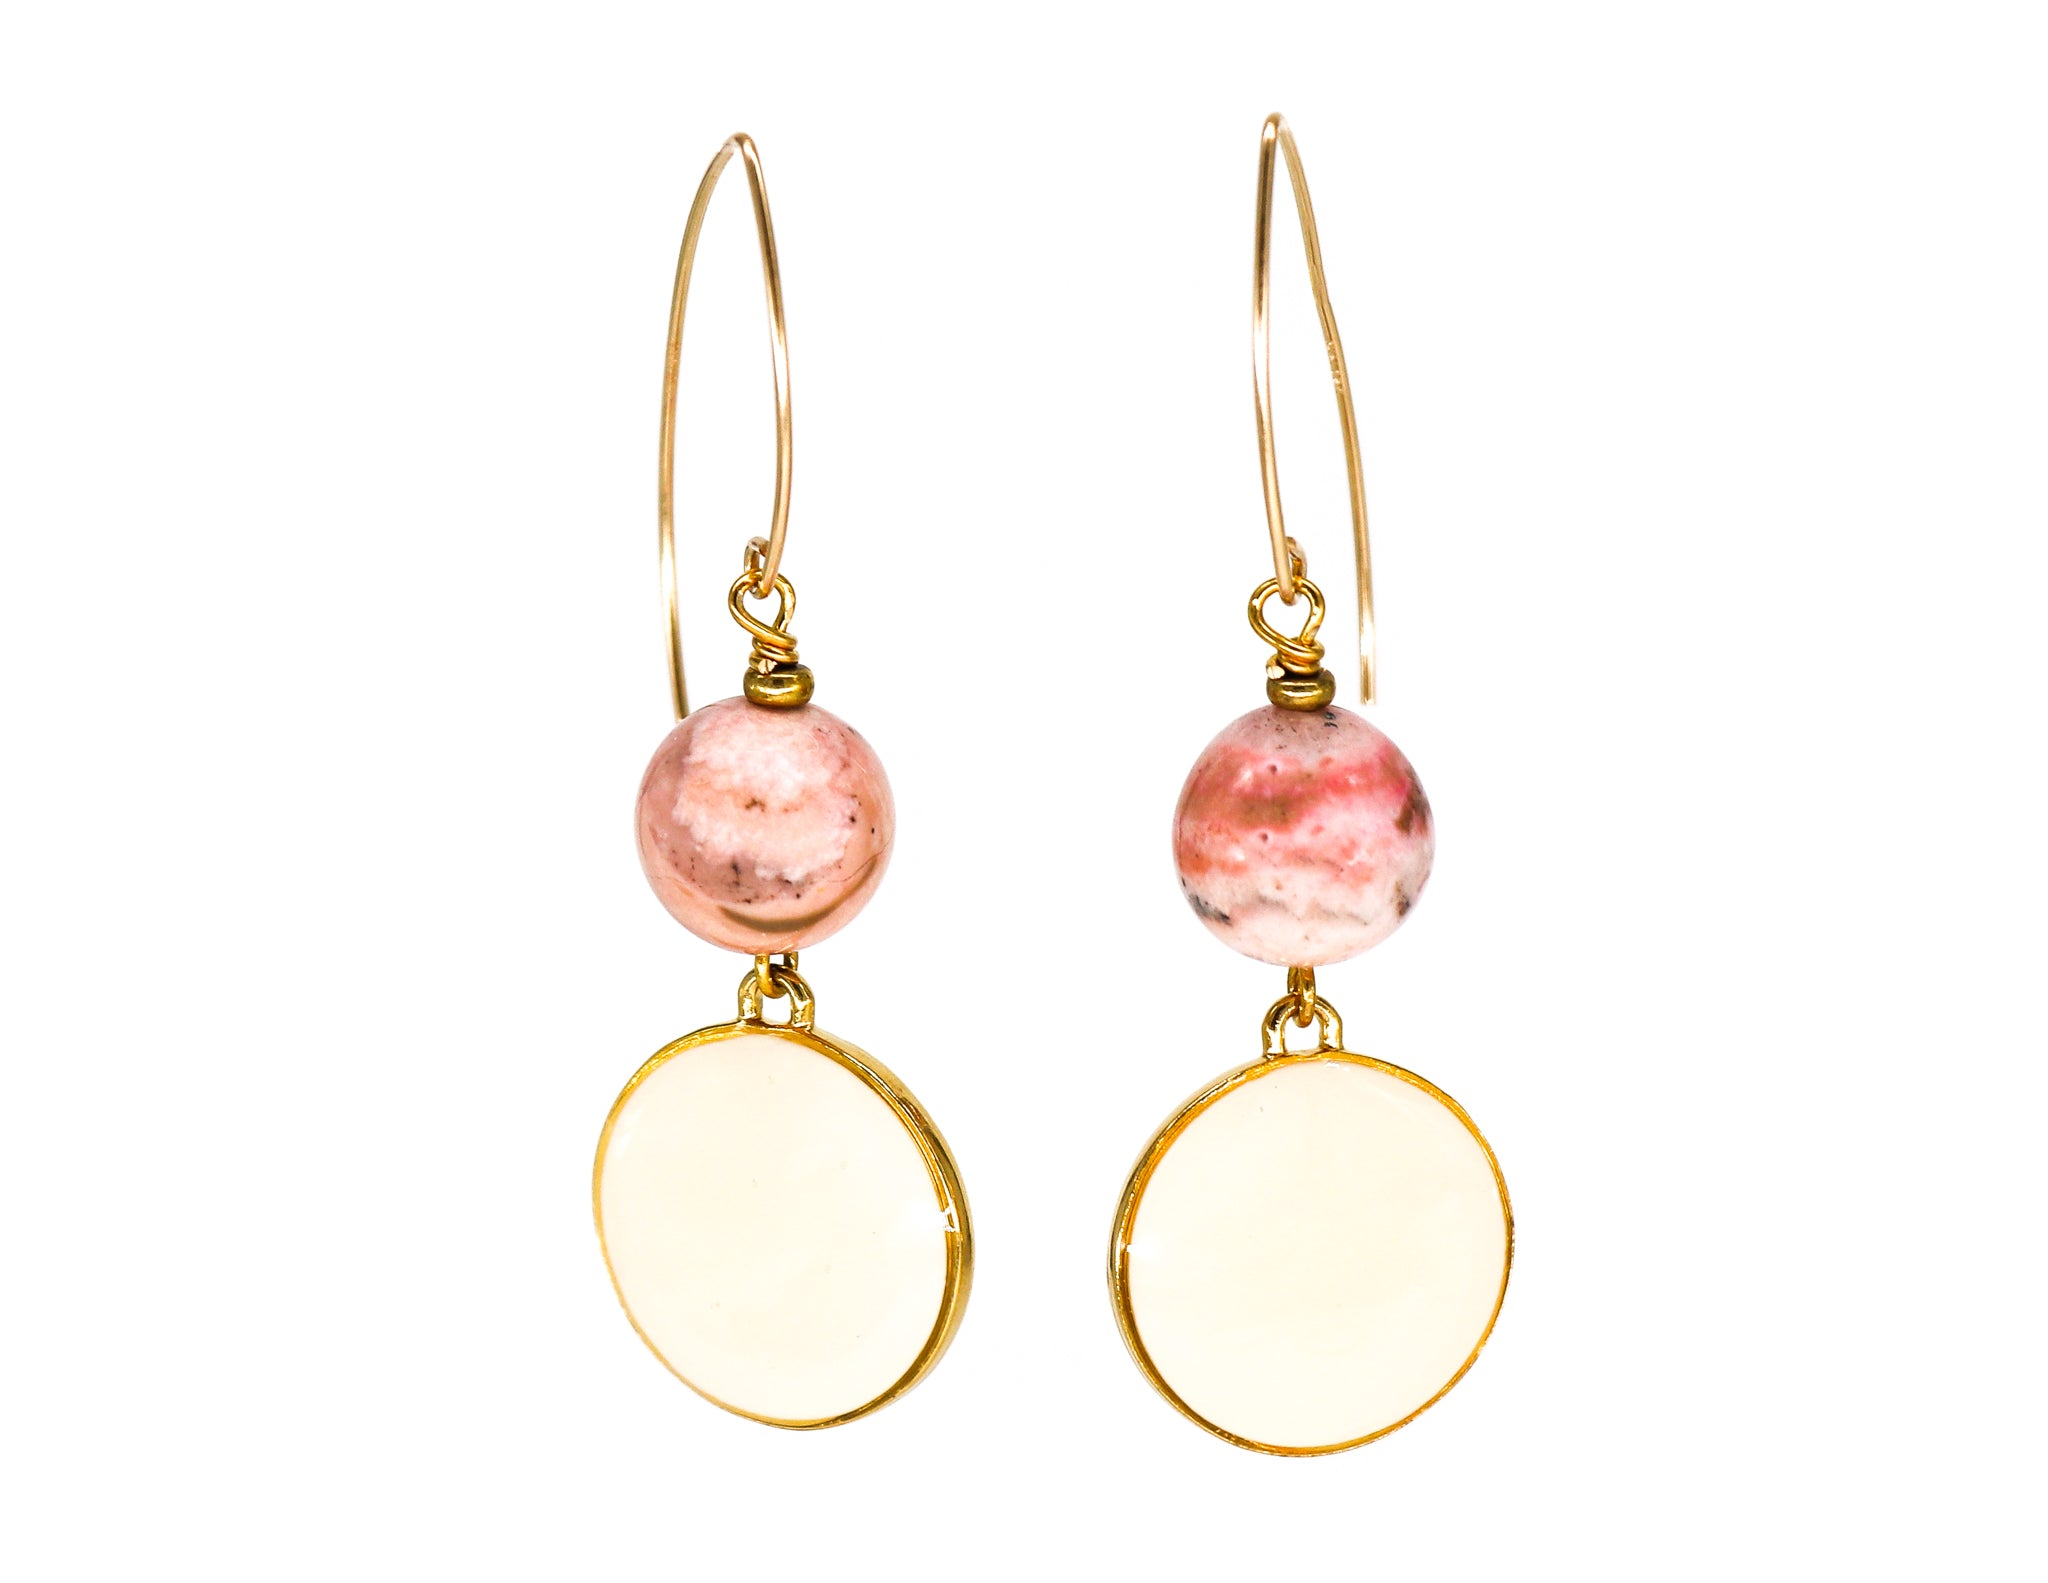 Rhodochrosite and cream enamel earrings